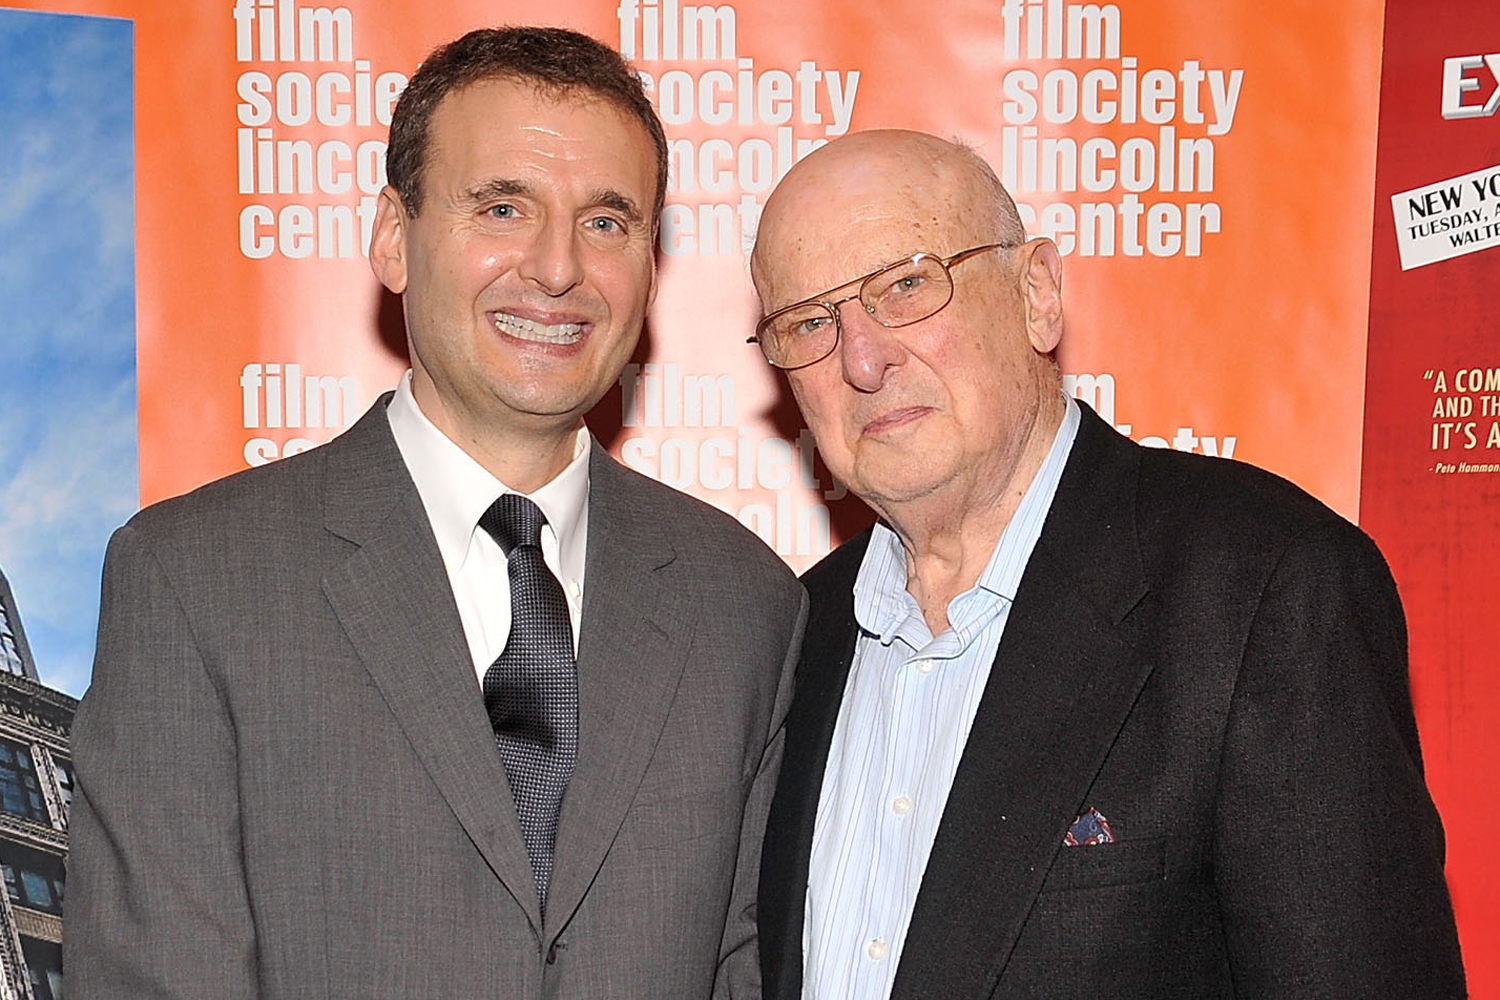 Phil Rosenthal and his father, Max Rosenthal